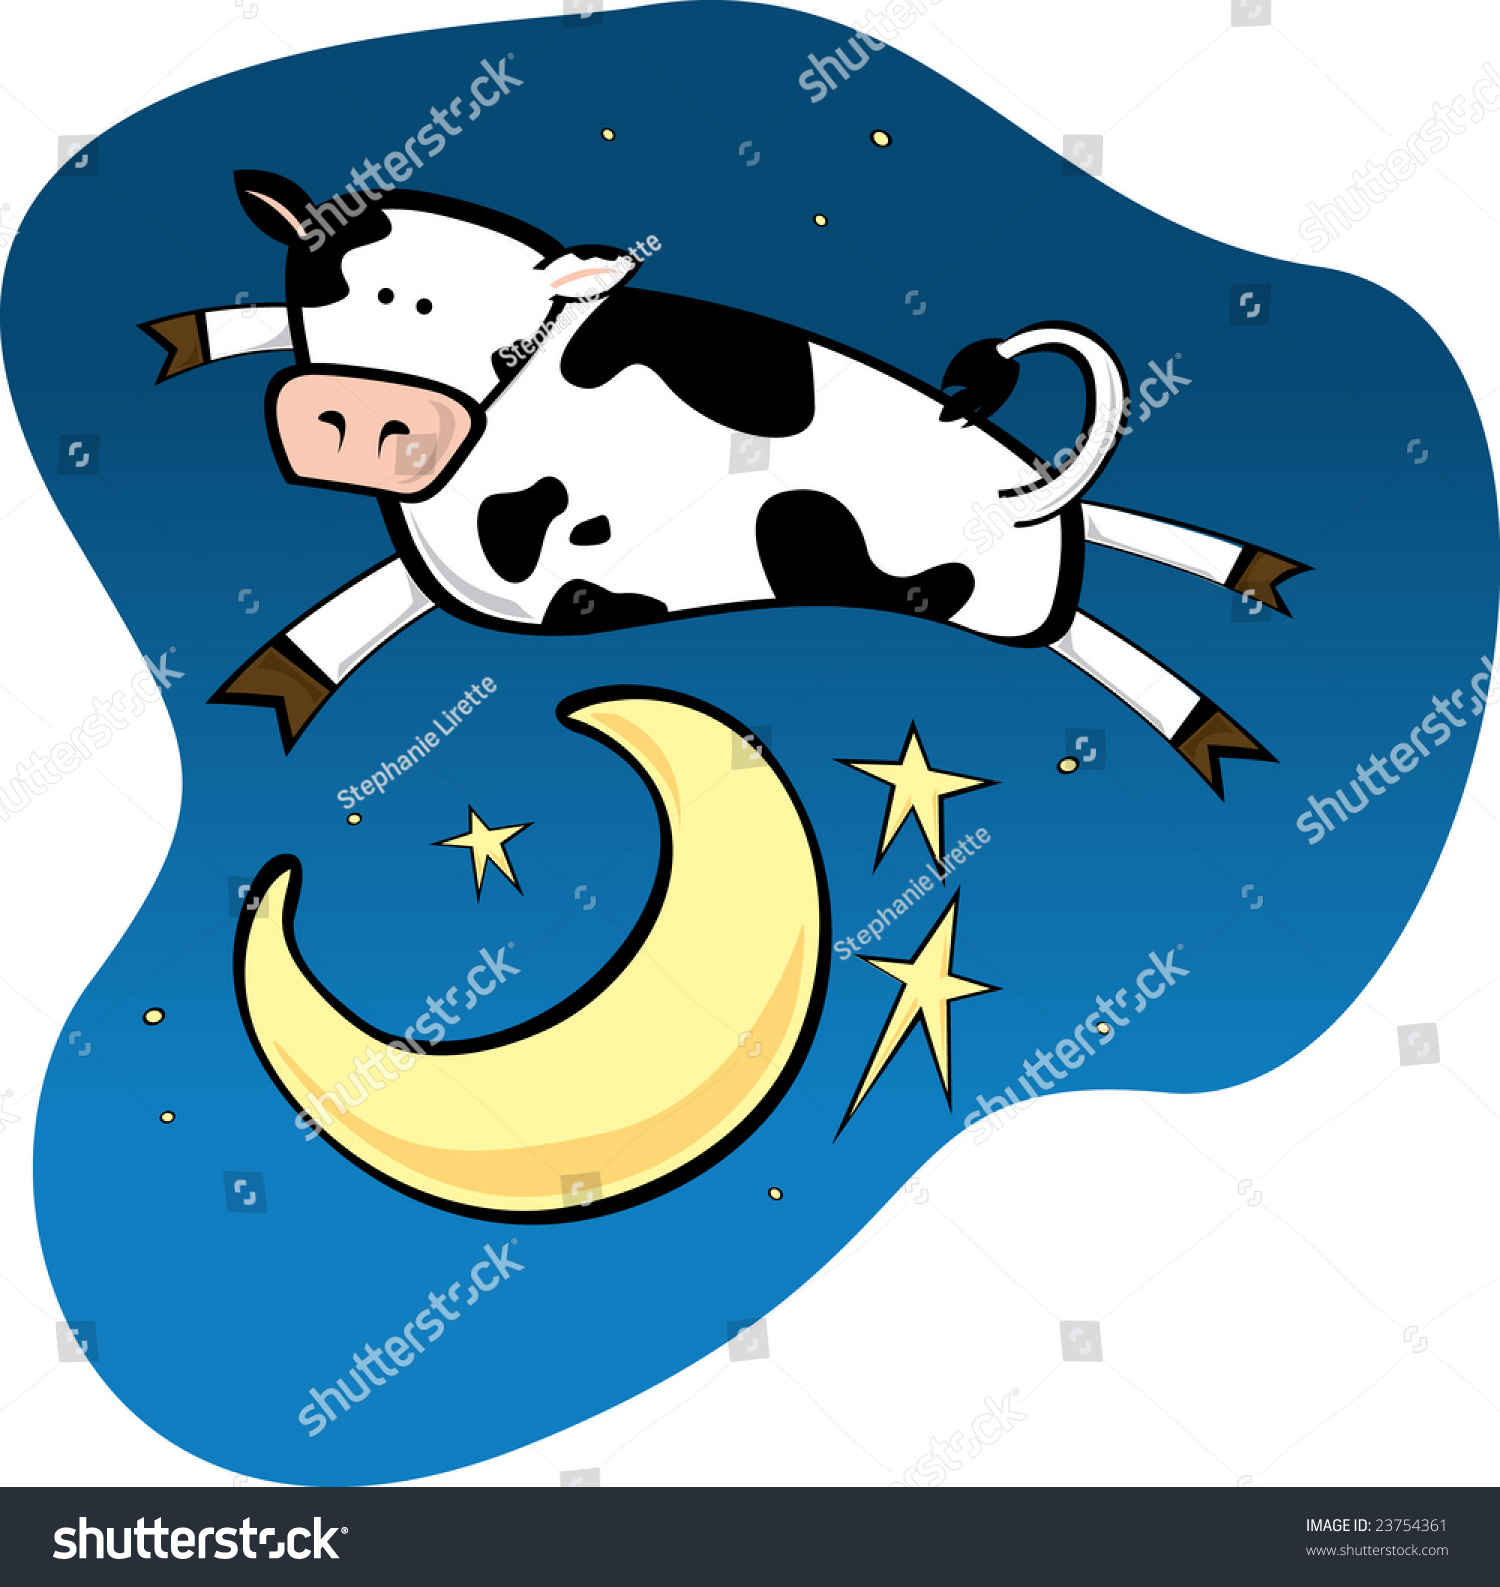 the cow jumped over the moon Hey diddle diddle is a fantasy rhyme designed to delight children with impossible images such the cow jumped over the moon walt disney's team of animators use this type of imagery in animated films to great effect.